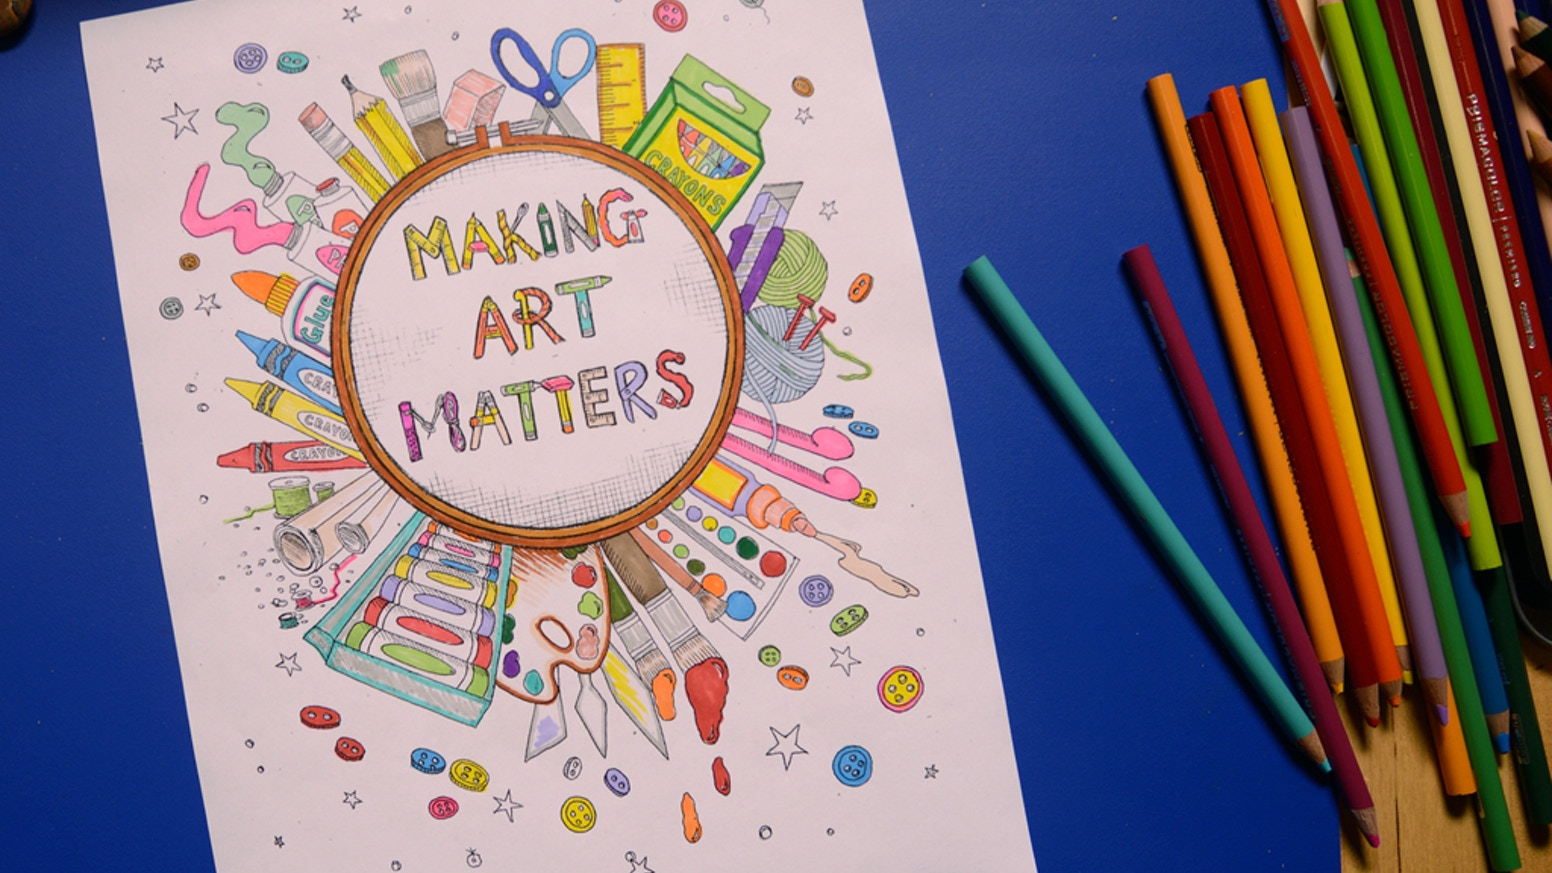 Because Everyone Is An Artist And Making Art Matters Created By The LivingRoom Community Studio